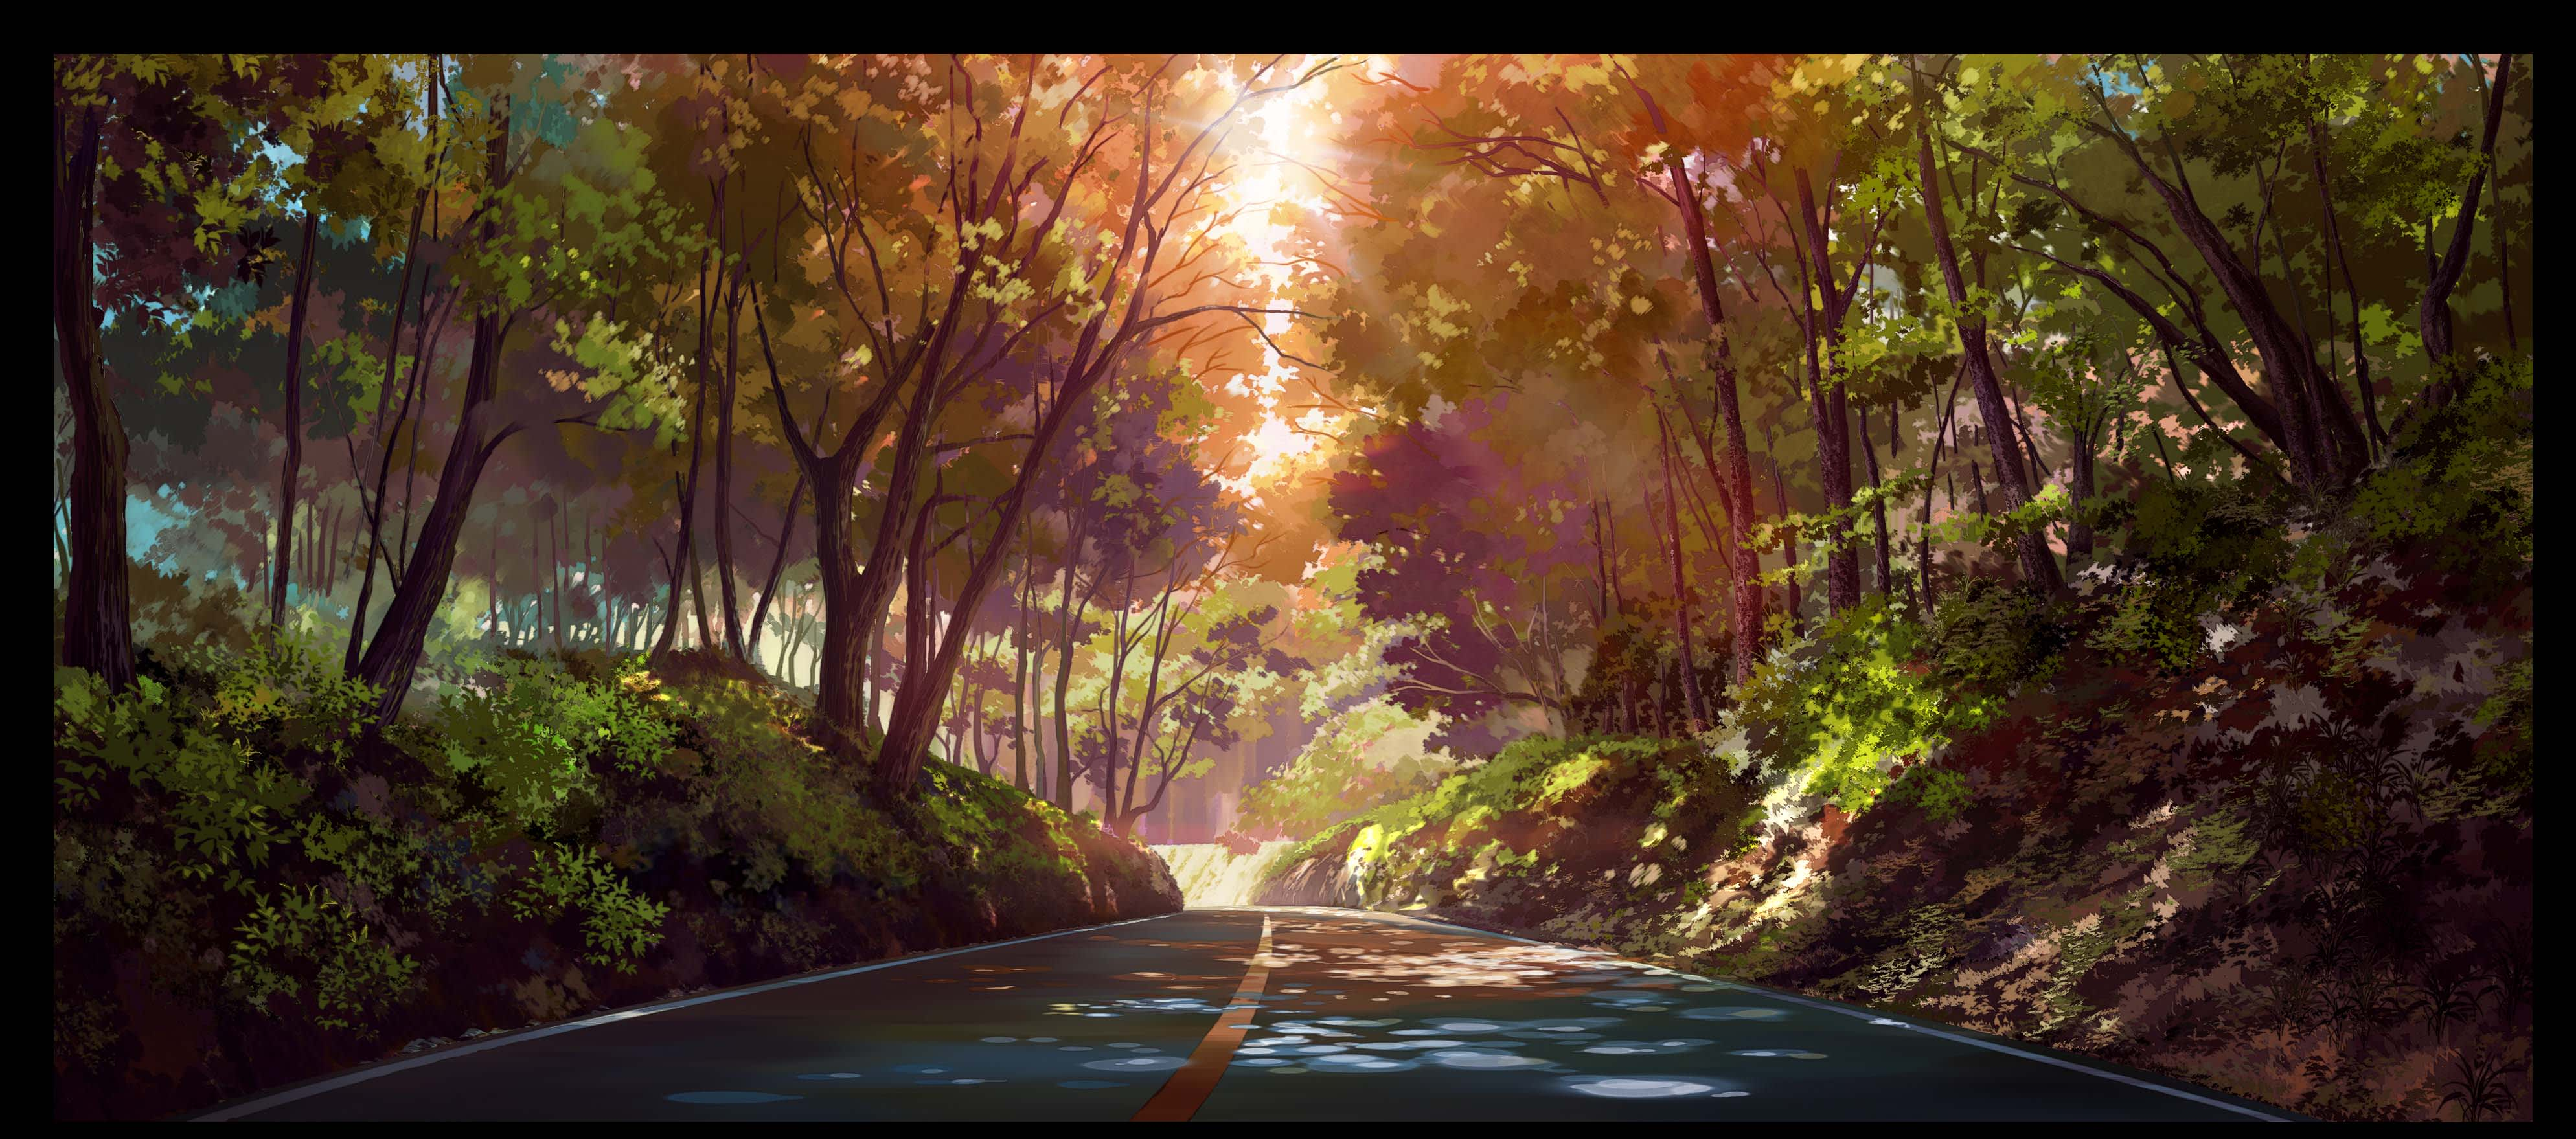 Draw Anime Background Anything Style By Myphuocanime Fiverr